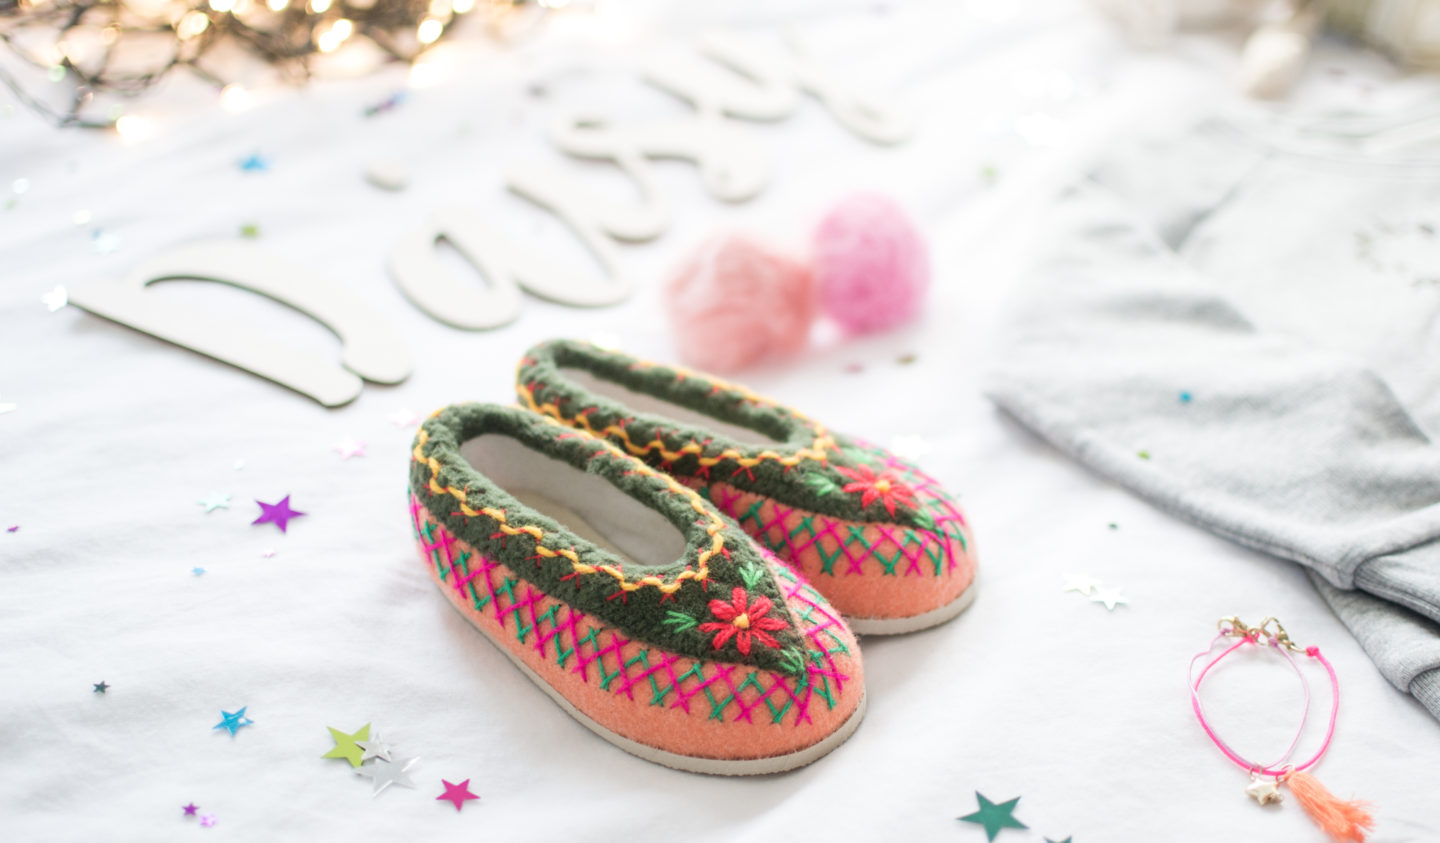 Embroidered Slippers Afolktale